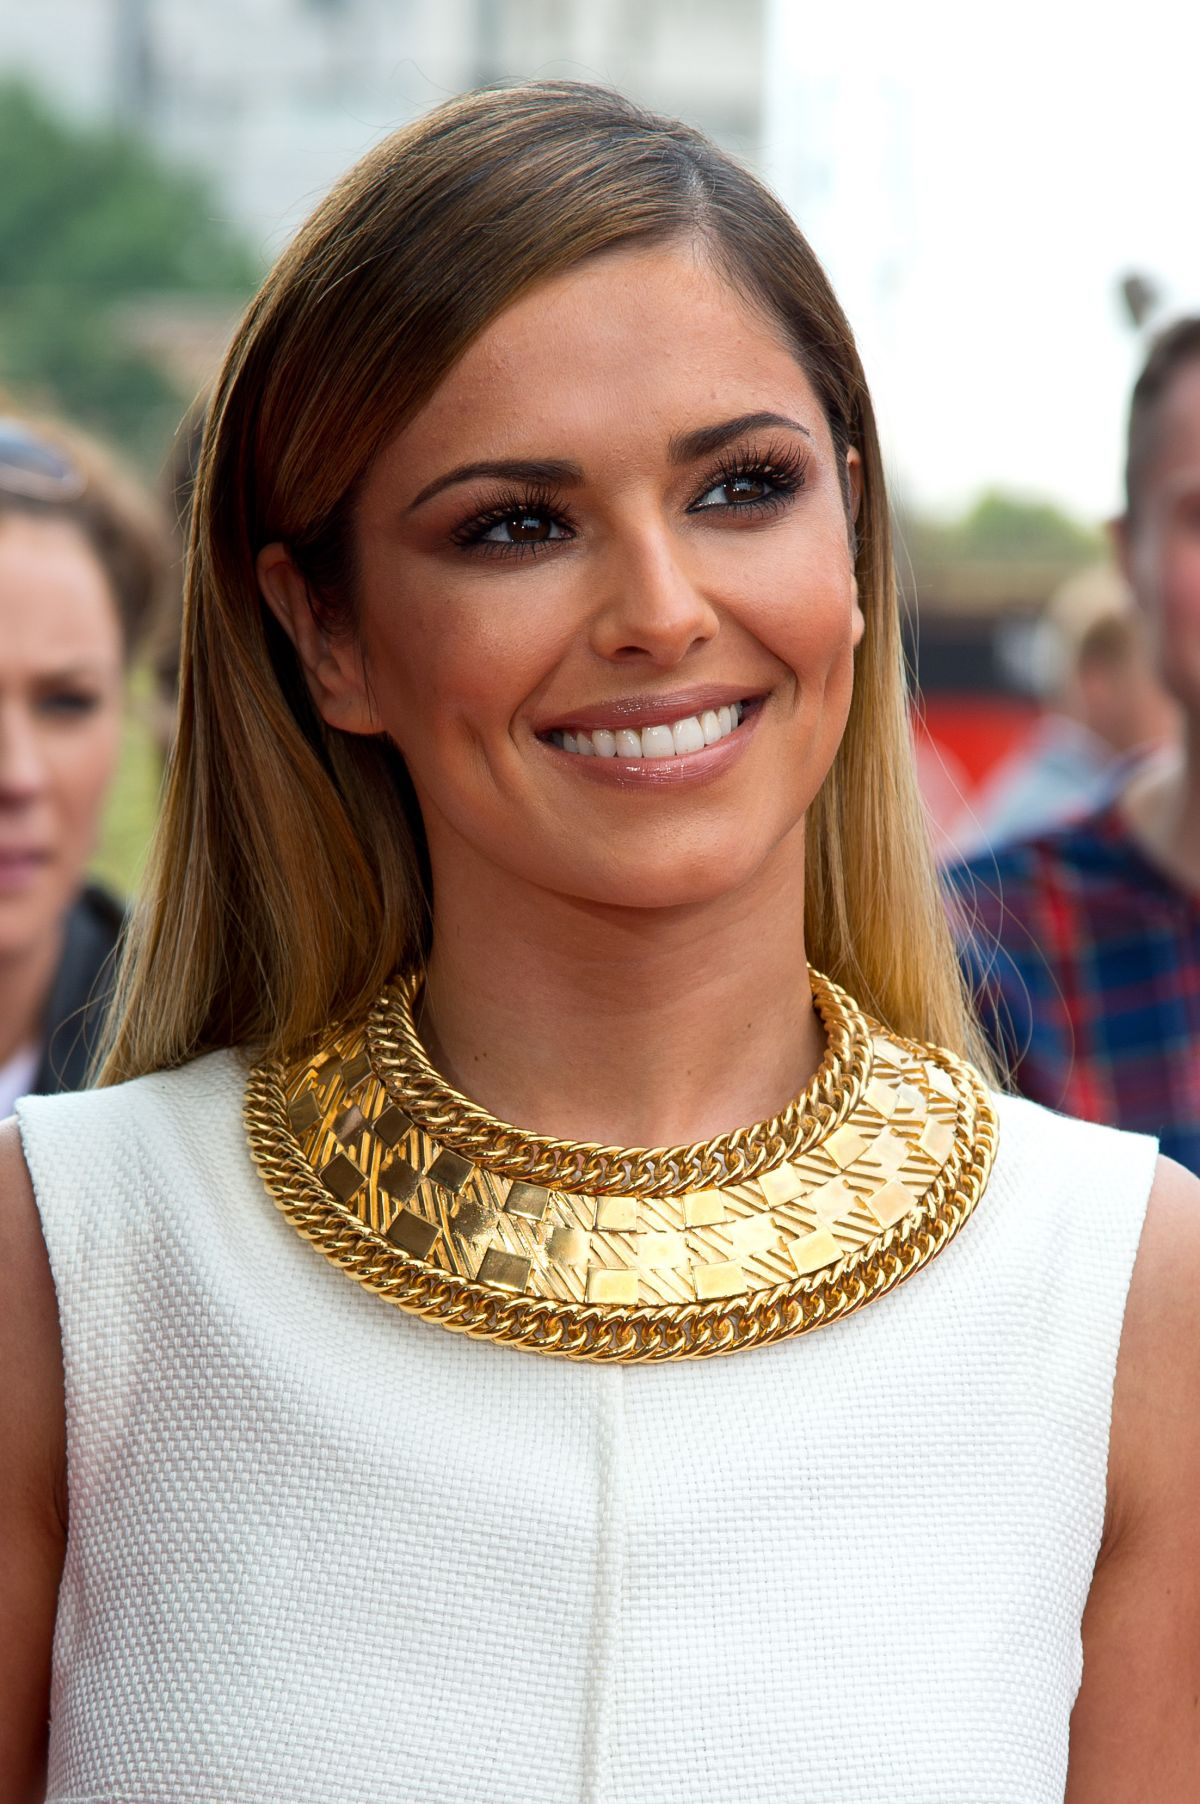 Cheryl Cole At X Factor Auditions In London - Celebzz ... Cheryl Cole